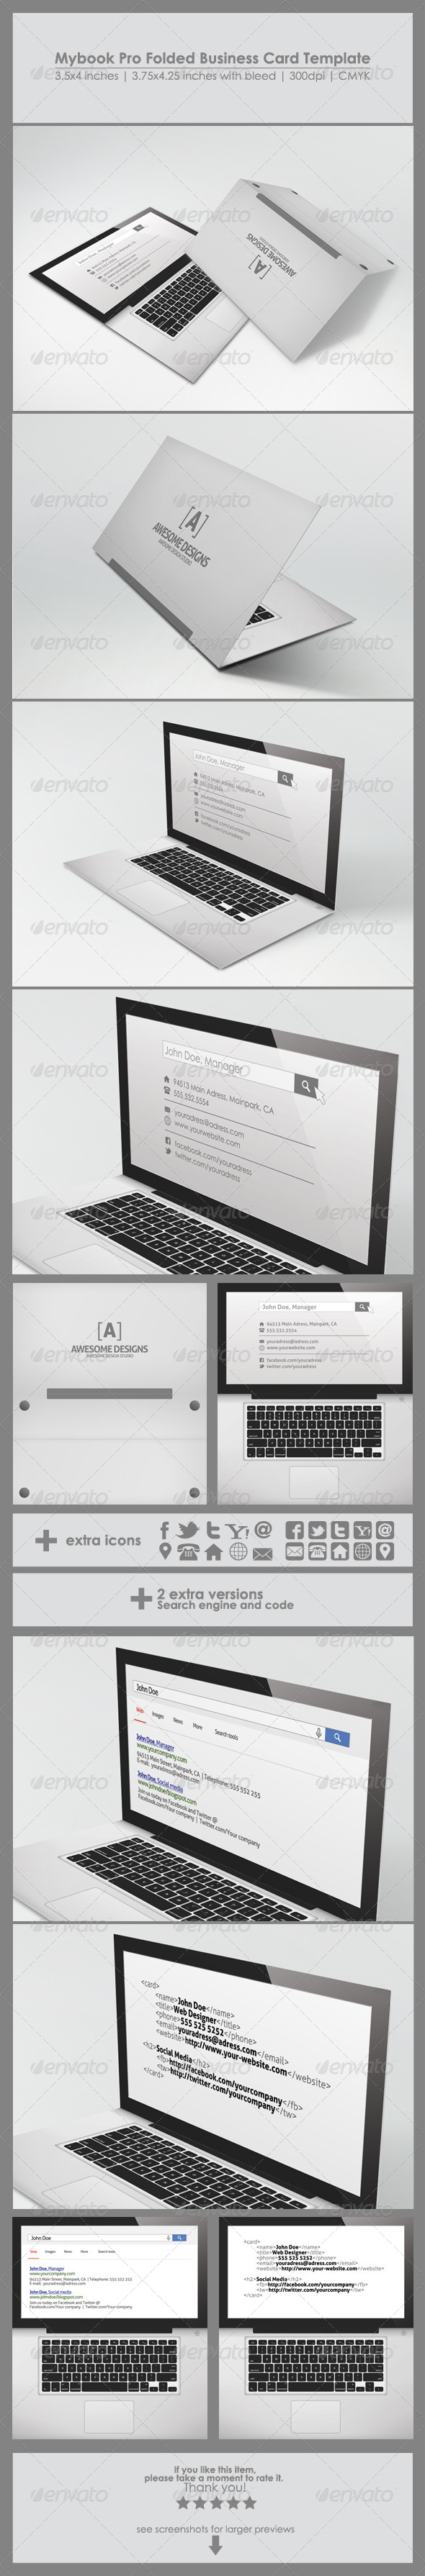 Mybook pro folded business card template by zeppelingraphics mybook pro folded business card template real objects business cards wajeb Image collections